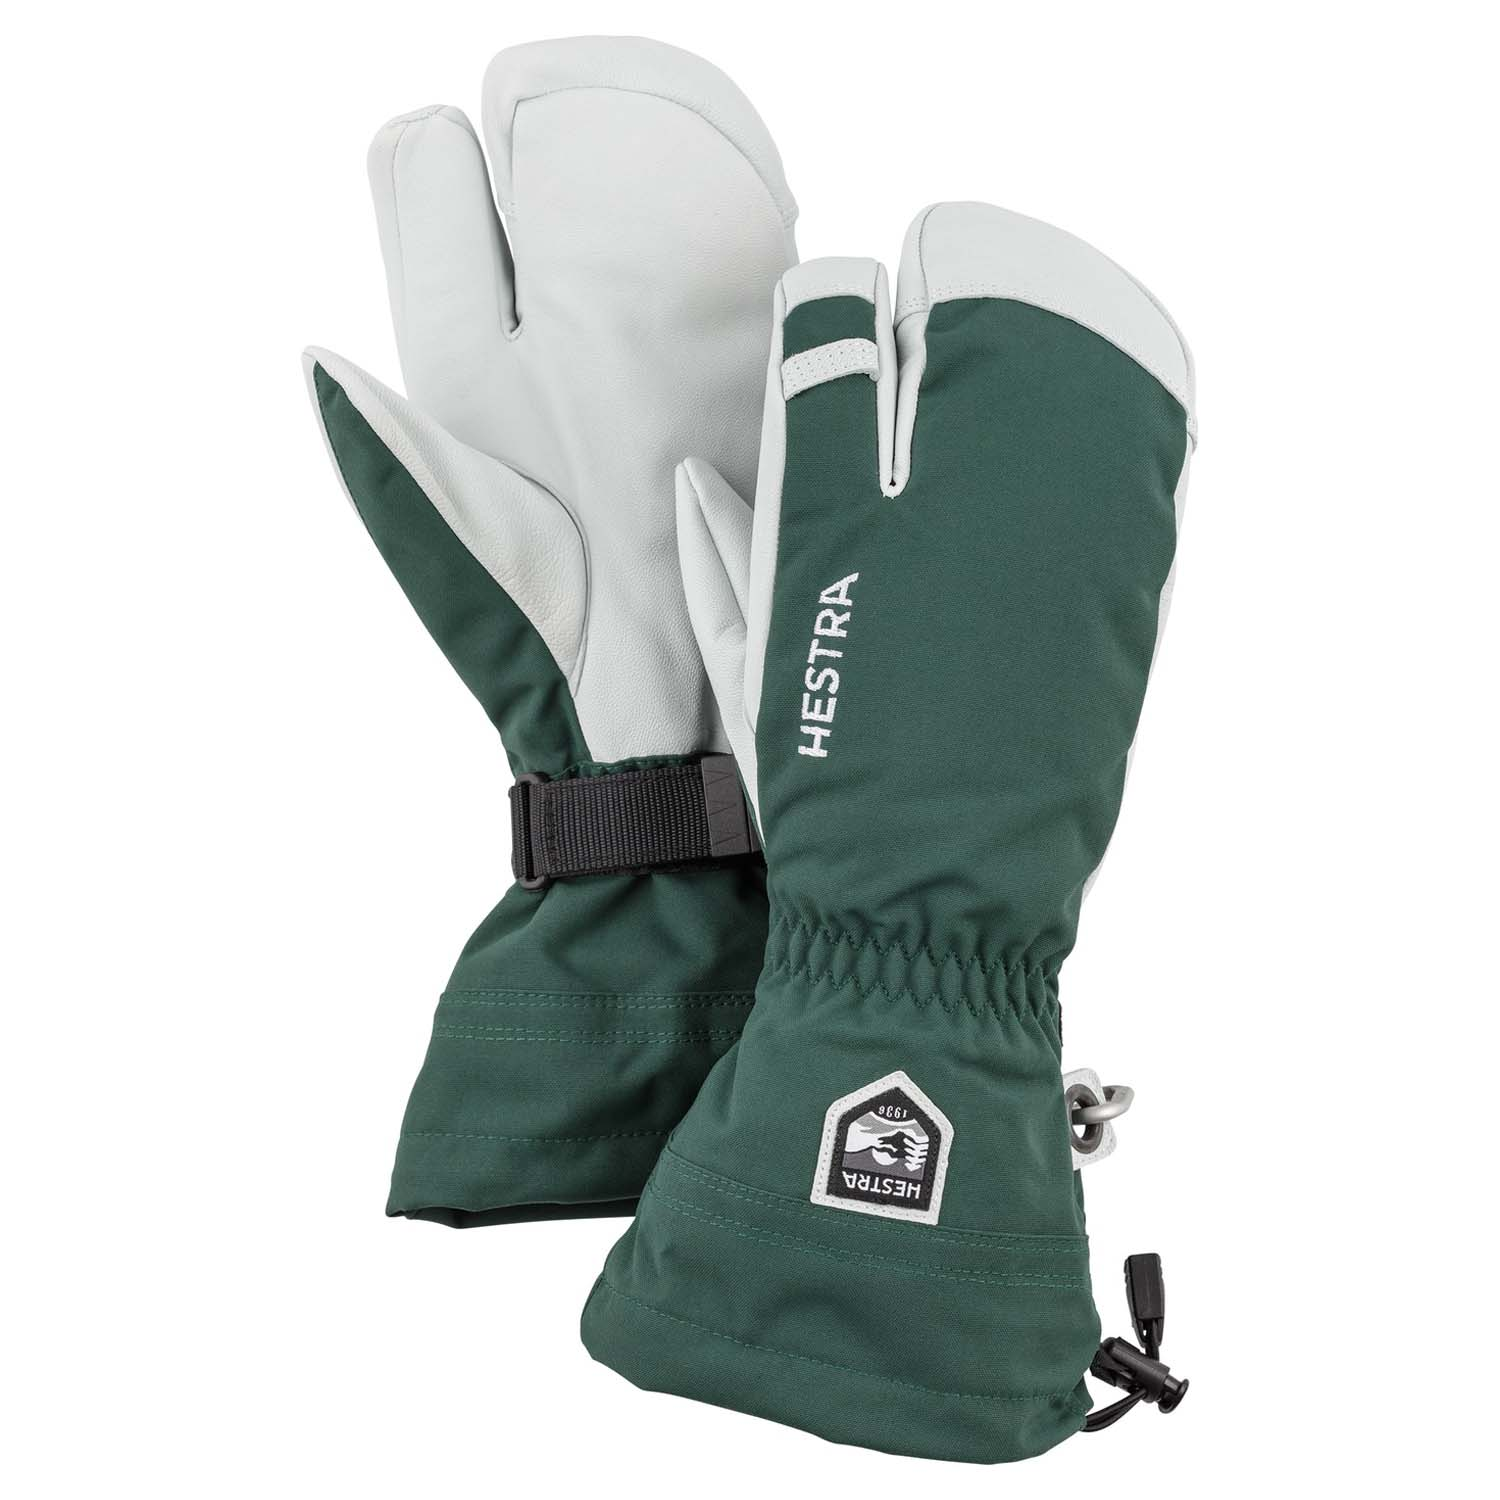 Hestra Army Leather Heli Ski 3-Finger Glove Green 2020